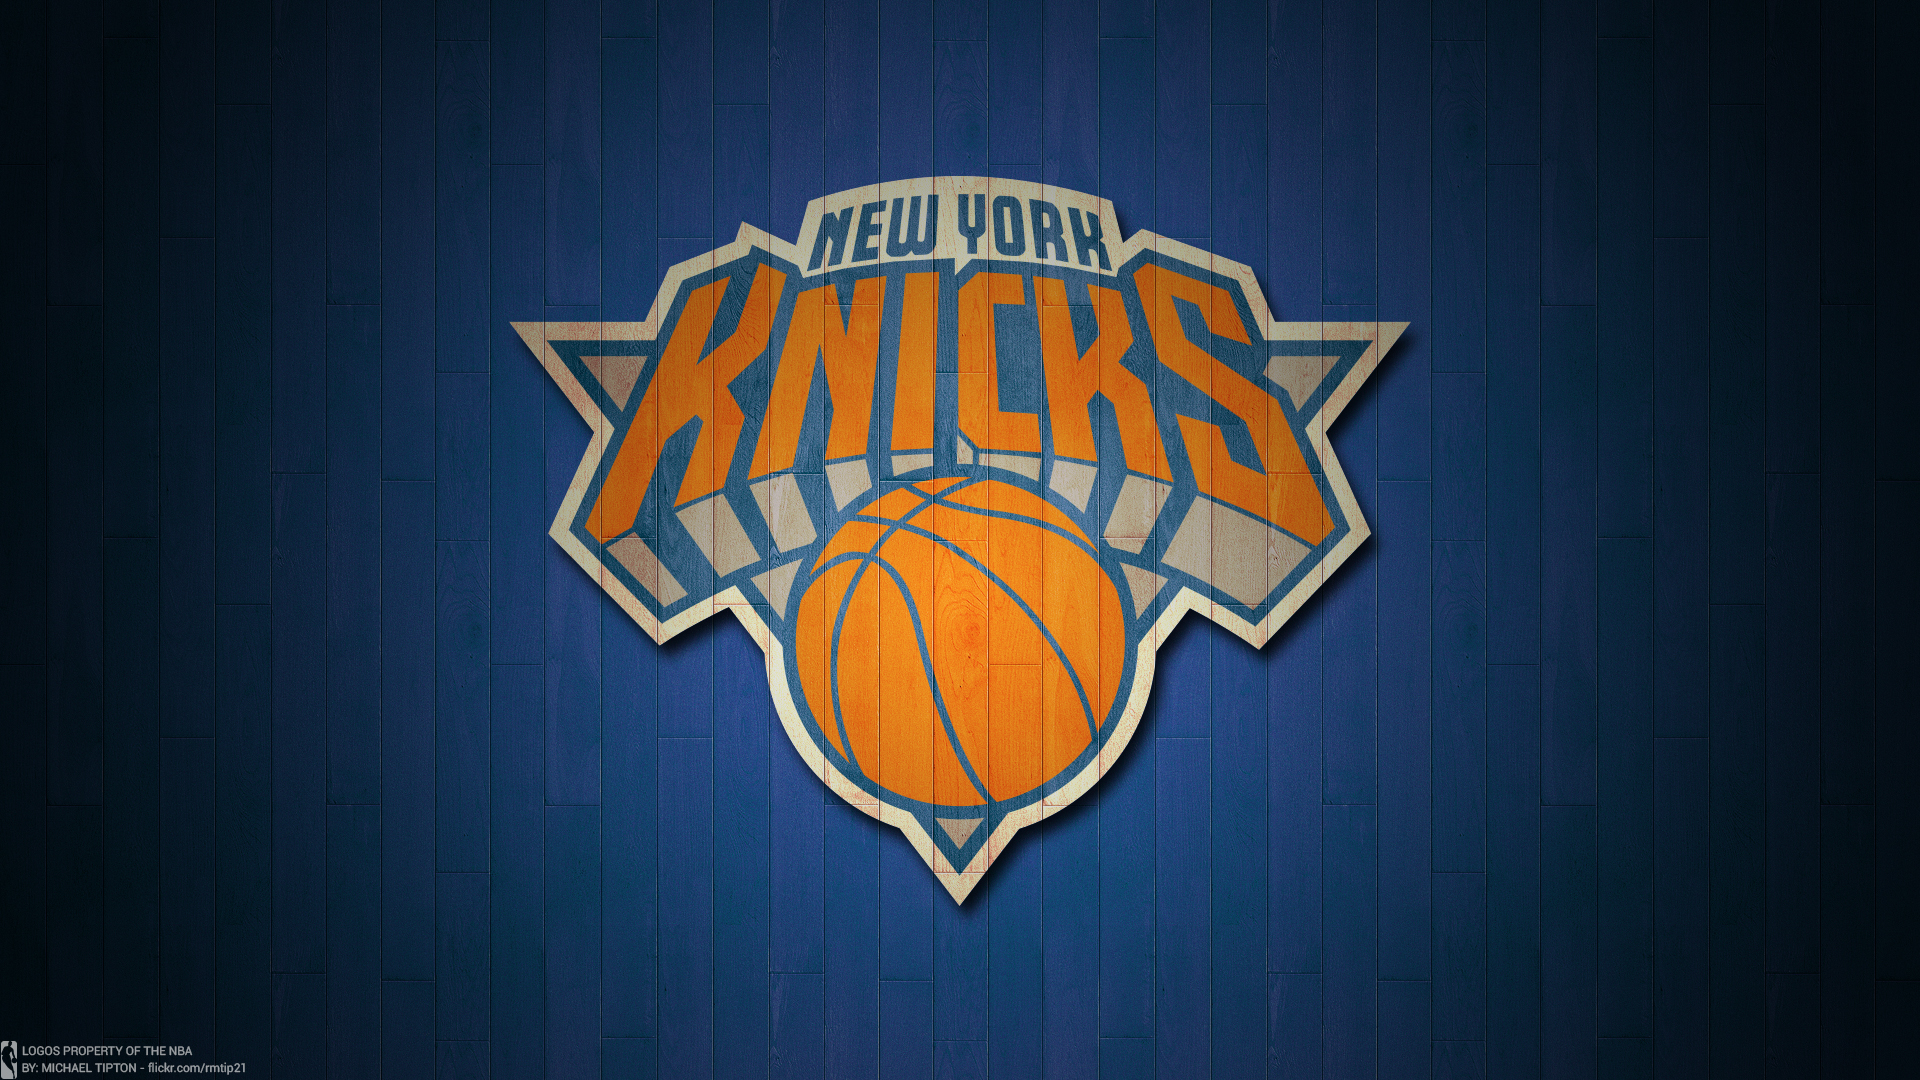 New York Nicks